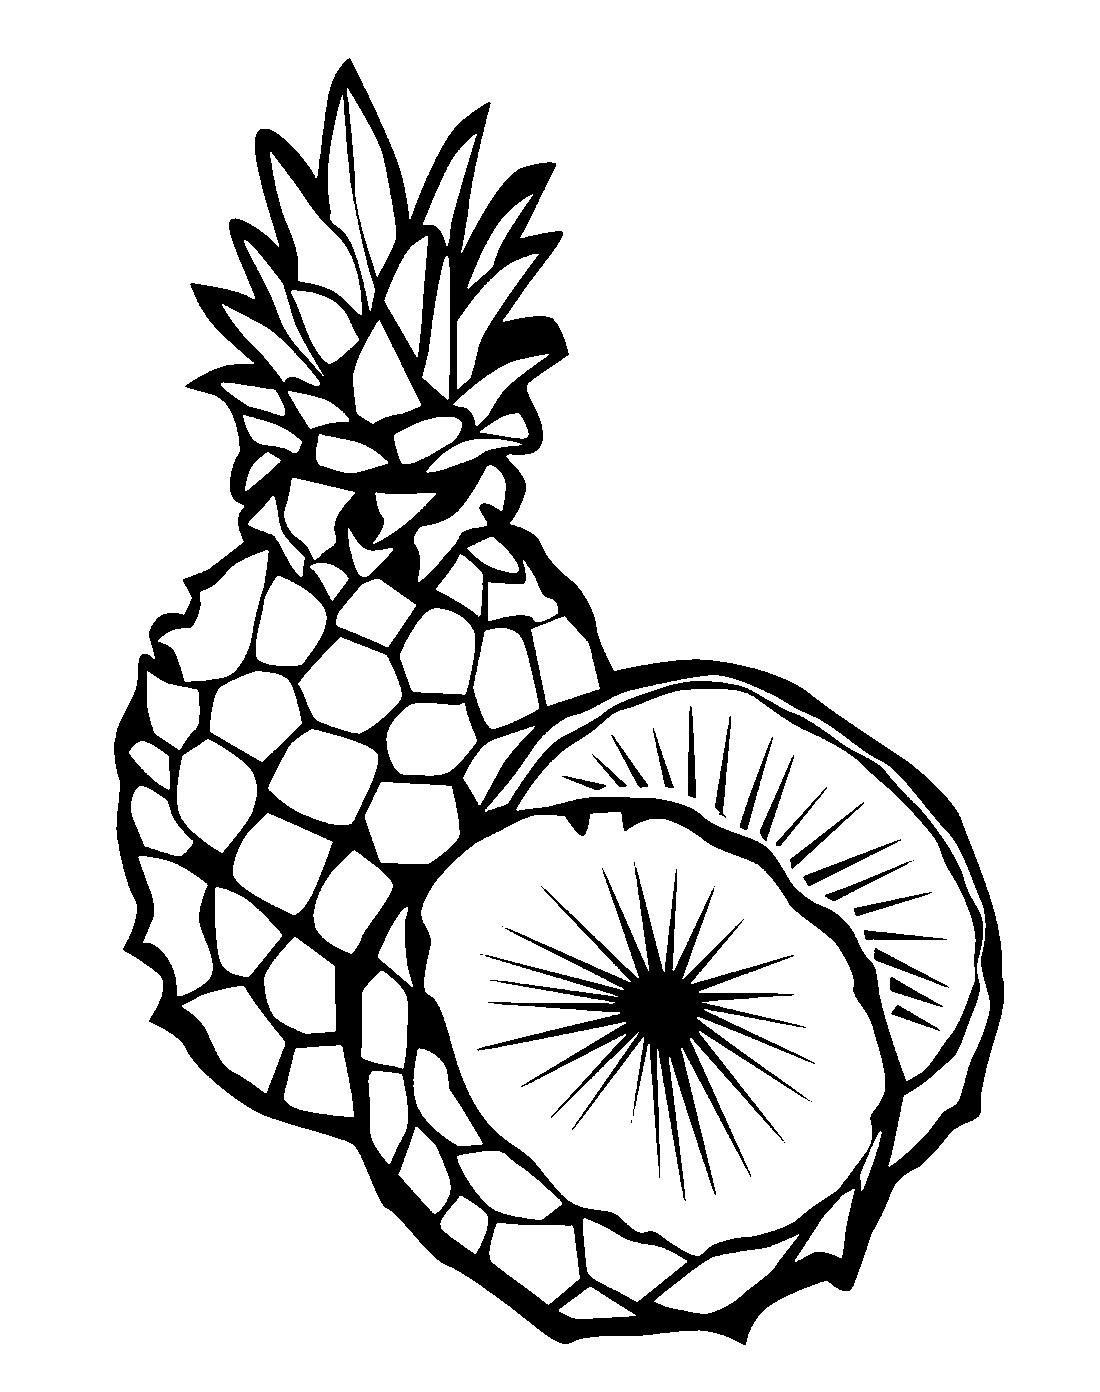 coloring pictures of pineapple craftsactvities and worksheets for preschooltoddler and coloring pictures pineapple of